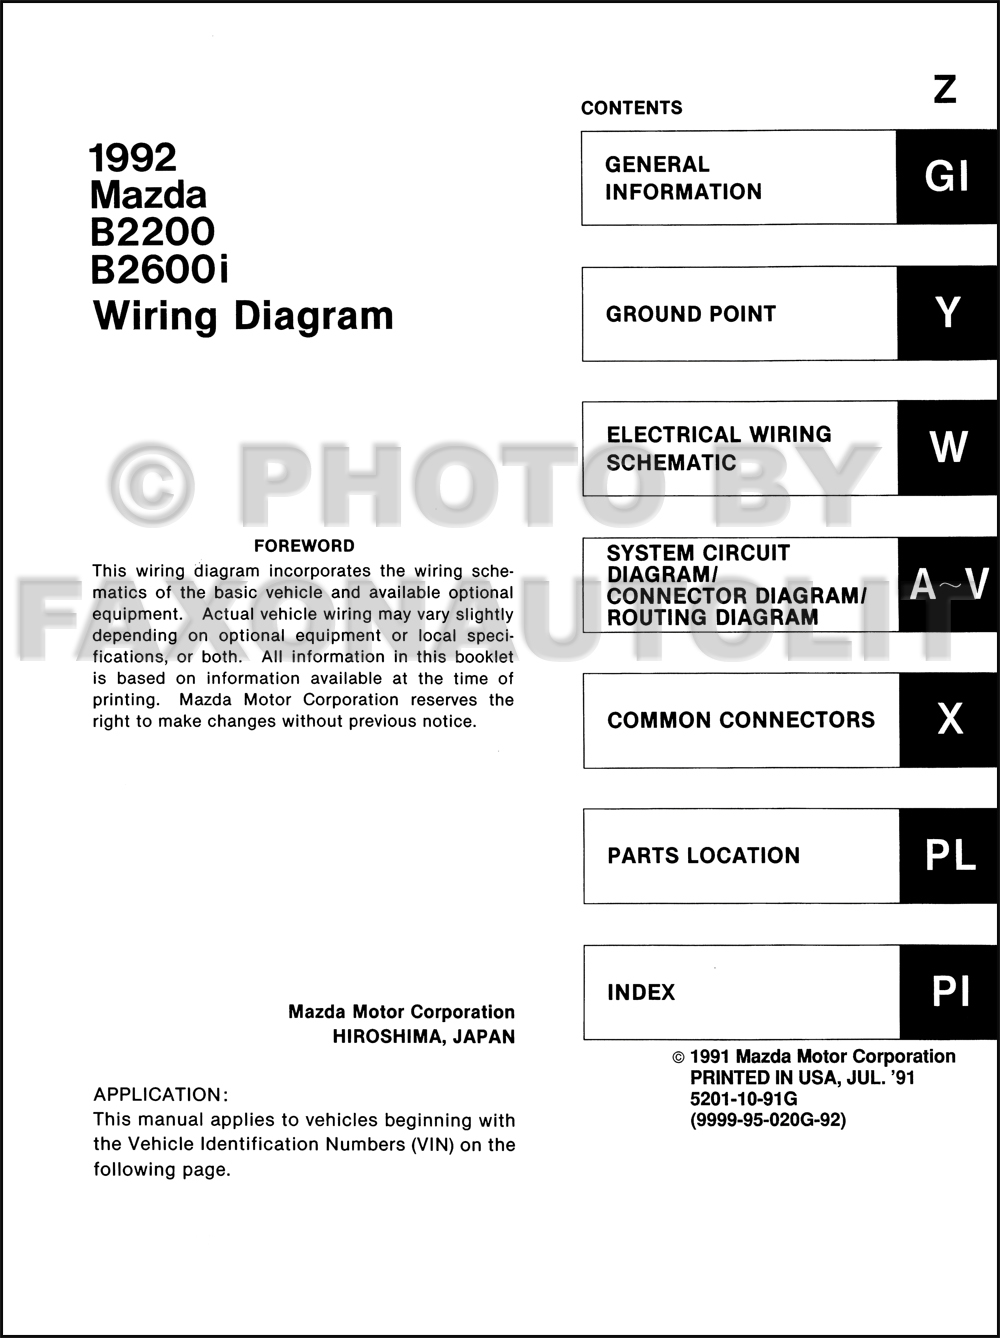 1992MazdaB2200B2600iOWD TOC 1992 mazda b2200 b2600i pickup truck wiring diagram manual original 1988 mazda b2200 engine wiring harness at n-0.co